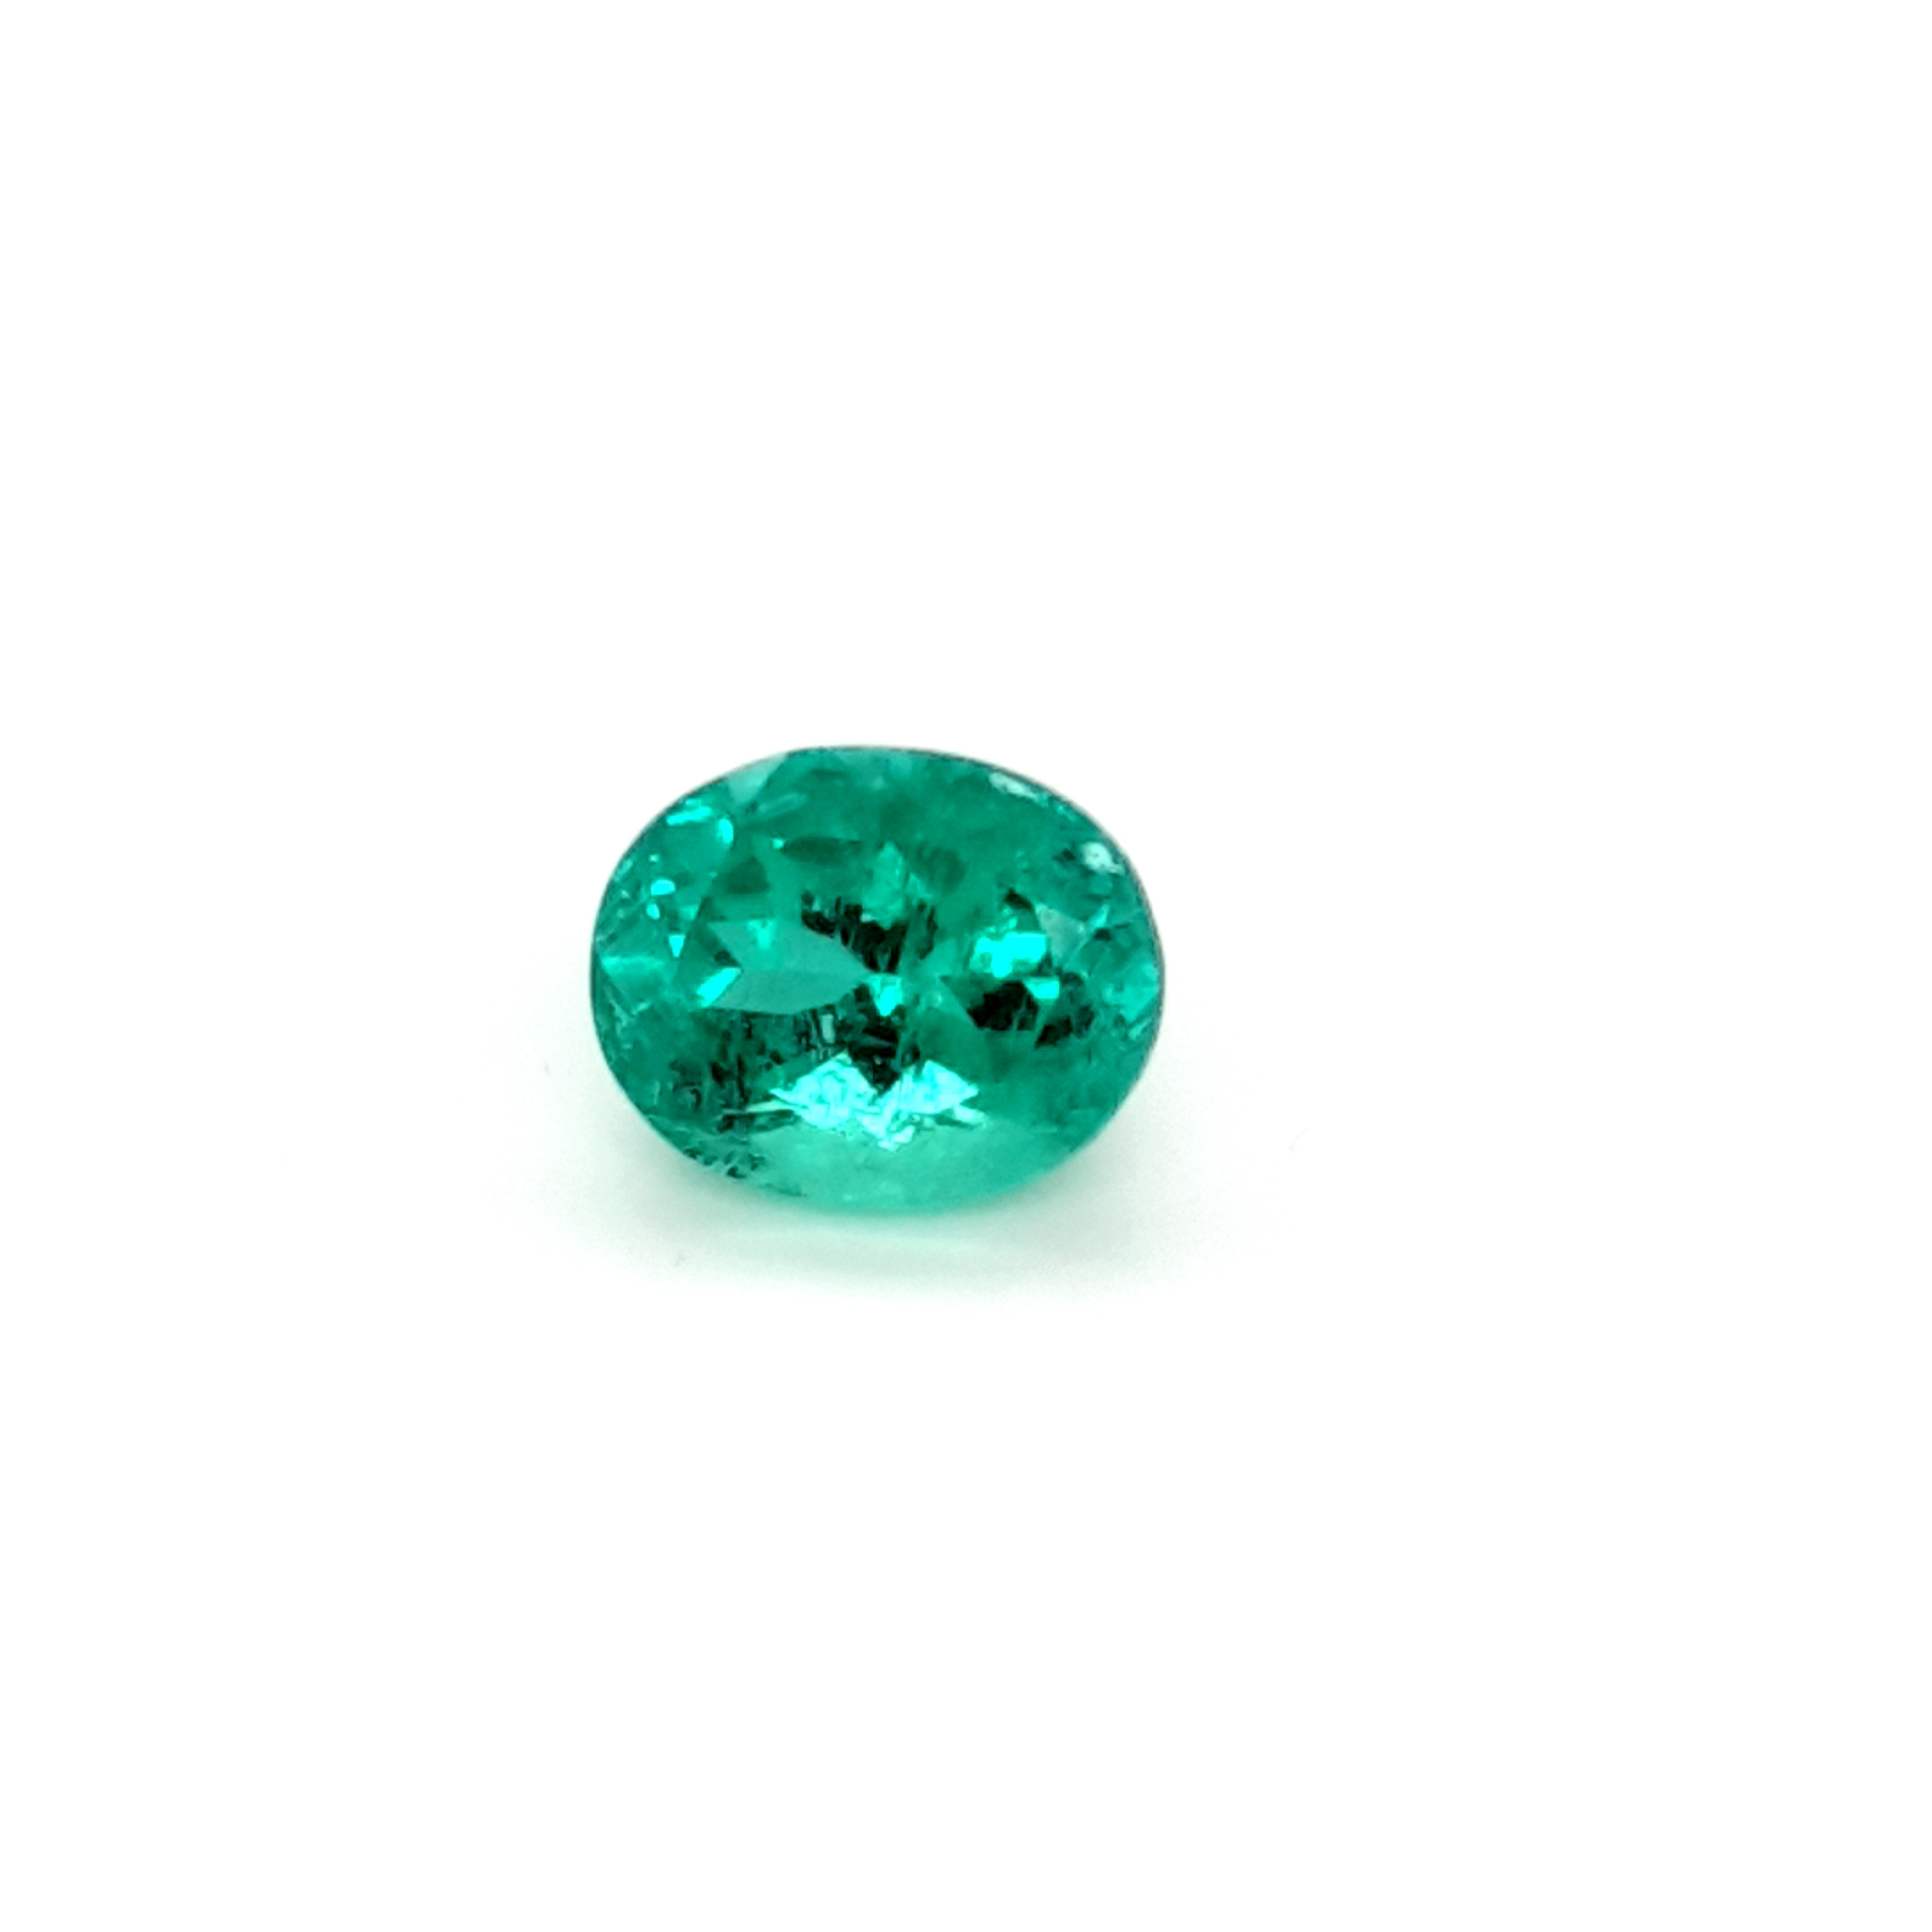 2,66ct. Emerald from Colombia cert. EMH17D5 ClaudiaHamann__2021-03-26-13-04-44